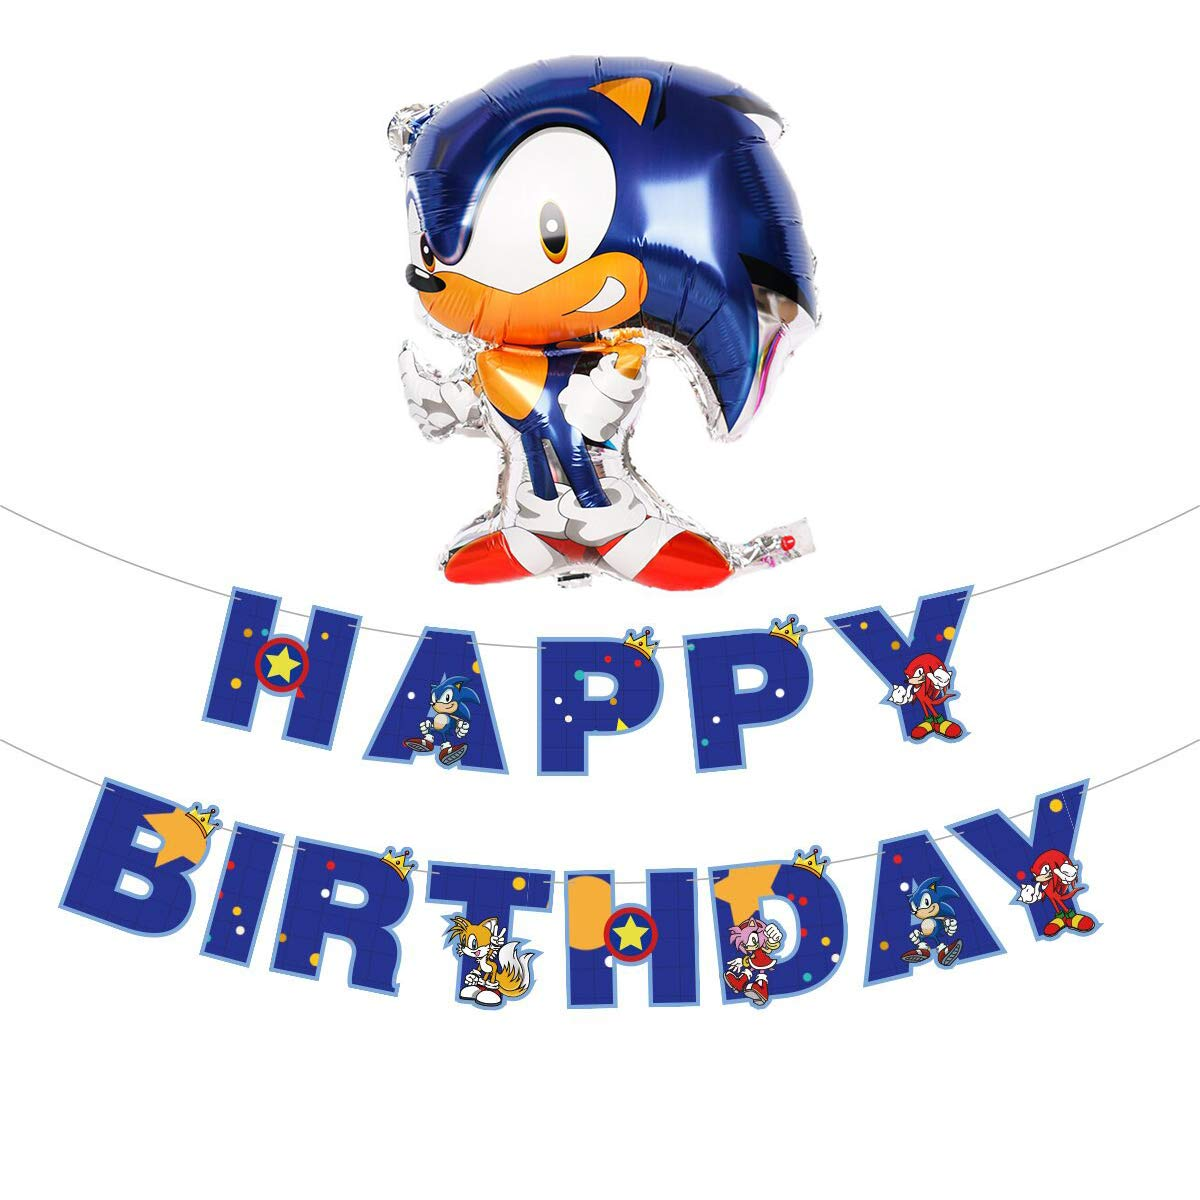 Popular Video Game Sonic the Hedgehog Happy Birthday Banner and